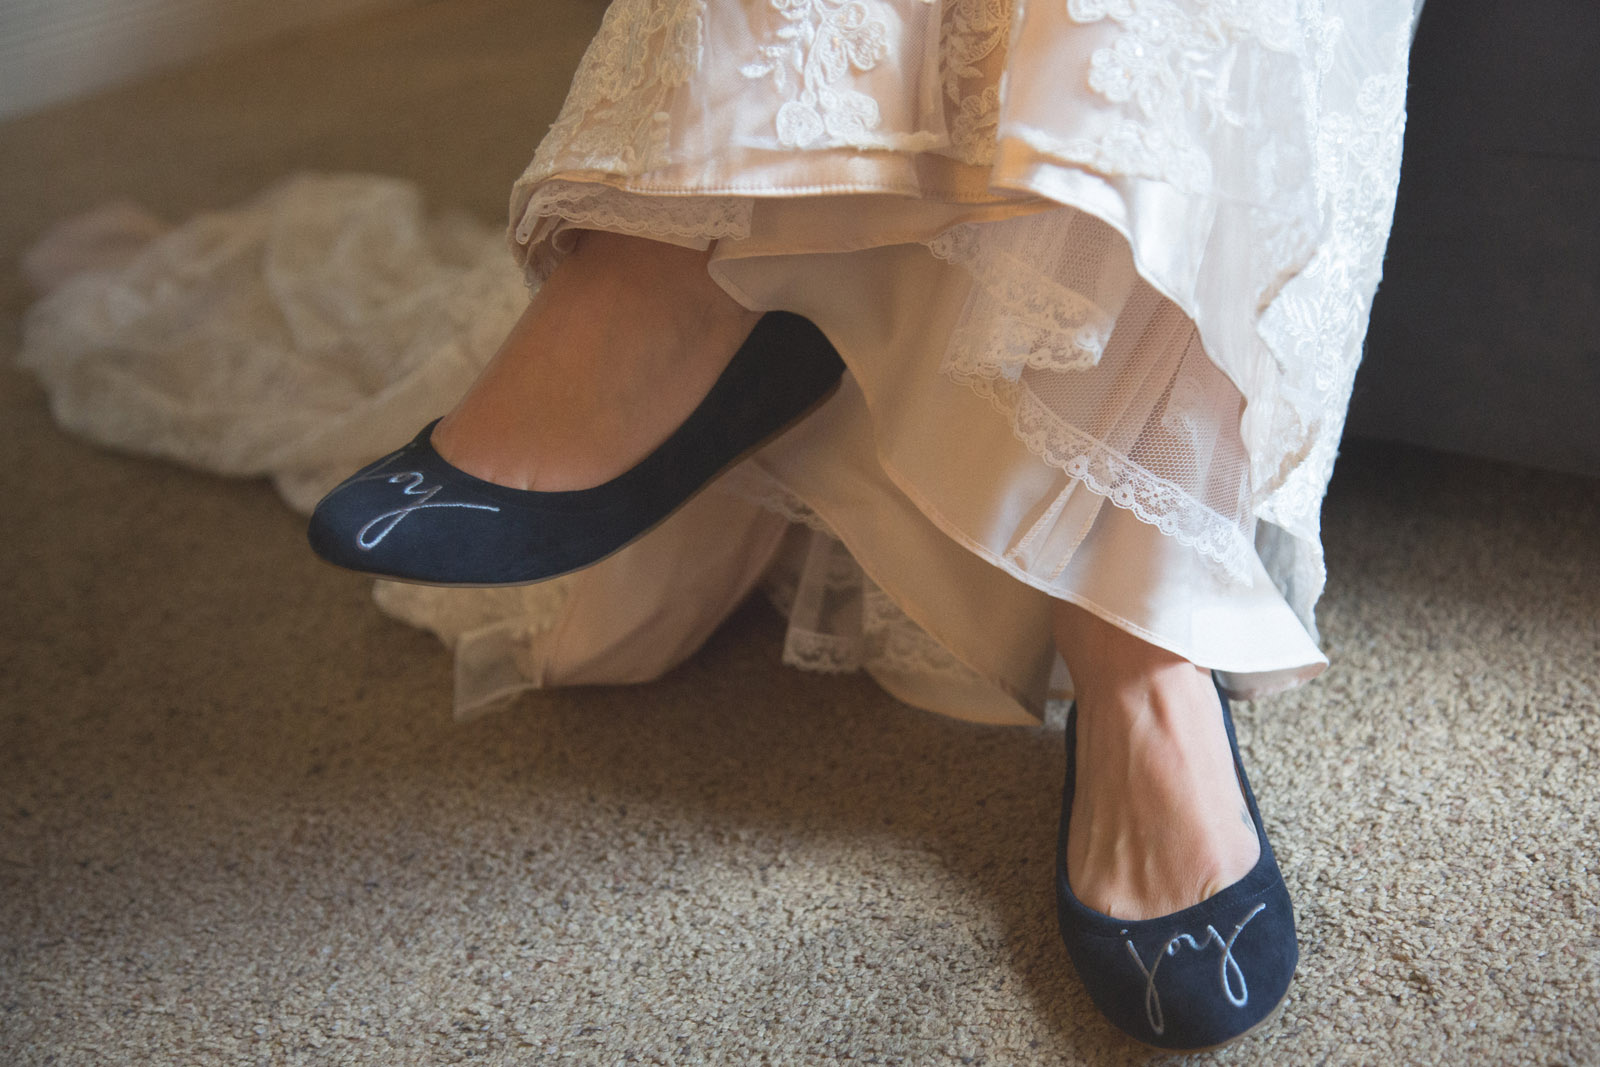 029-bride-puting-shoes-on-before-elopment-wedding-ceremony